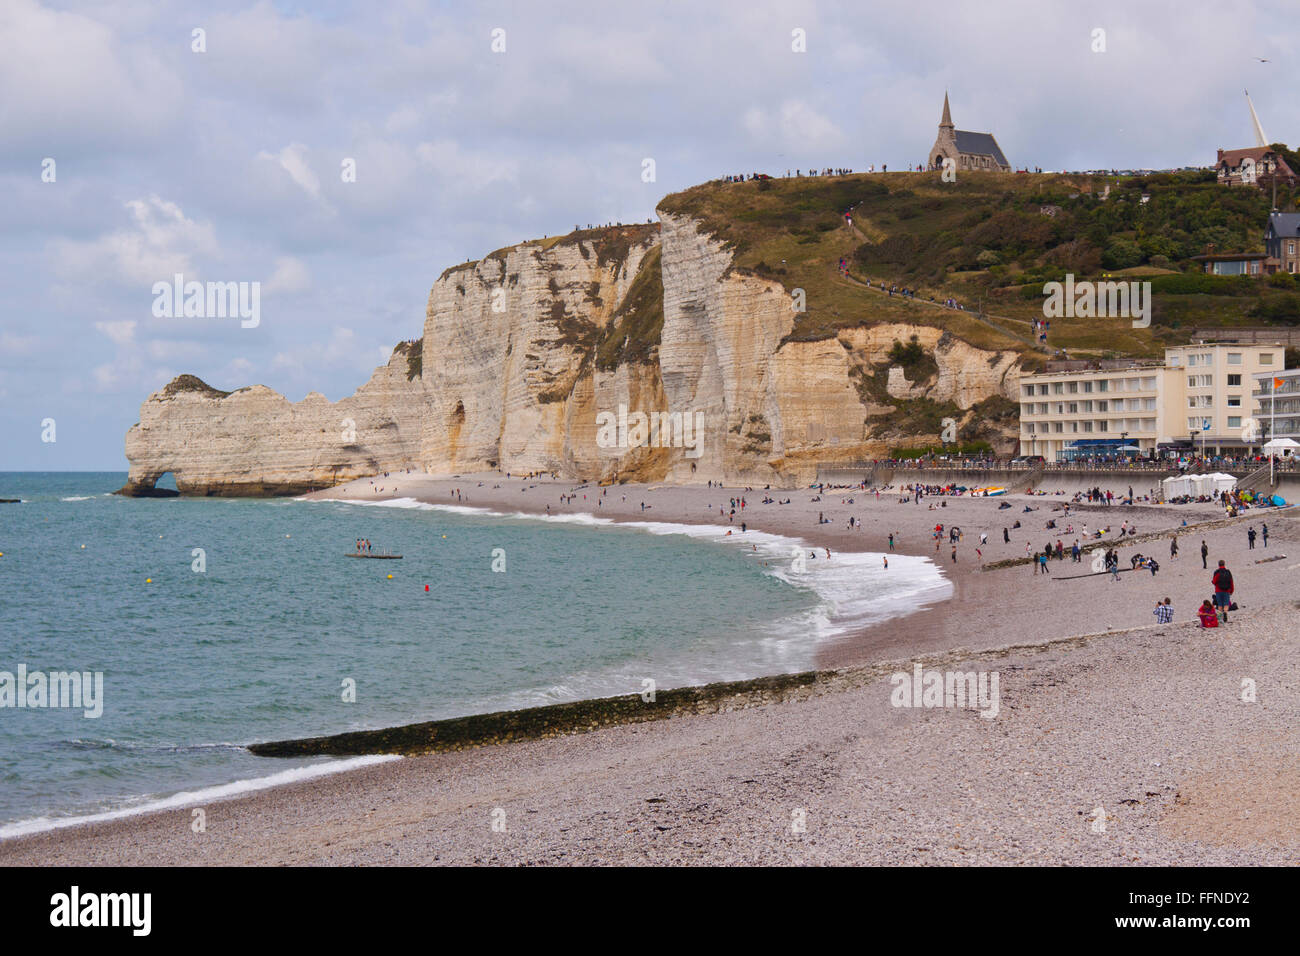 Etretat Beach in Normandy - Stock Image